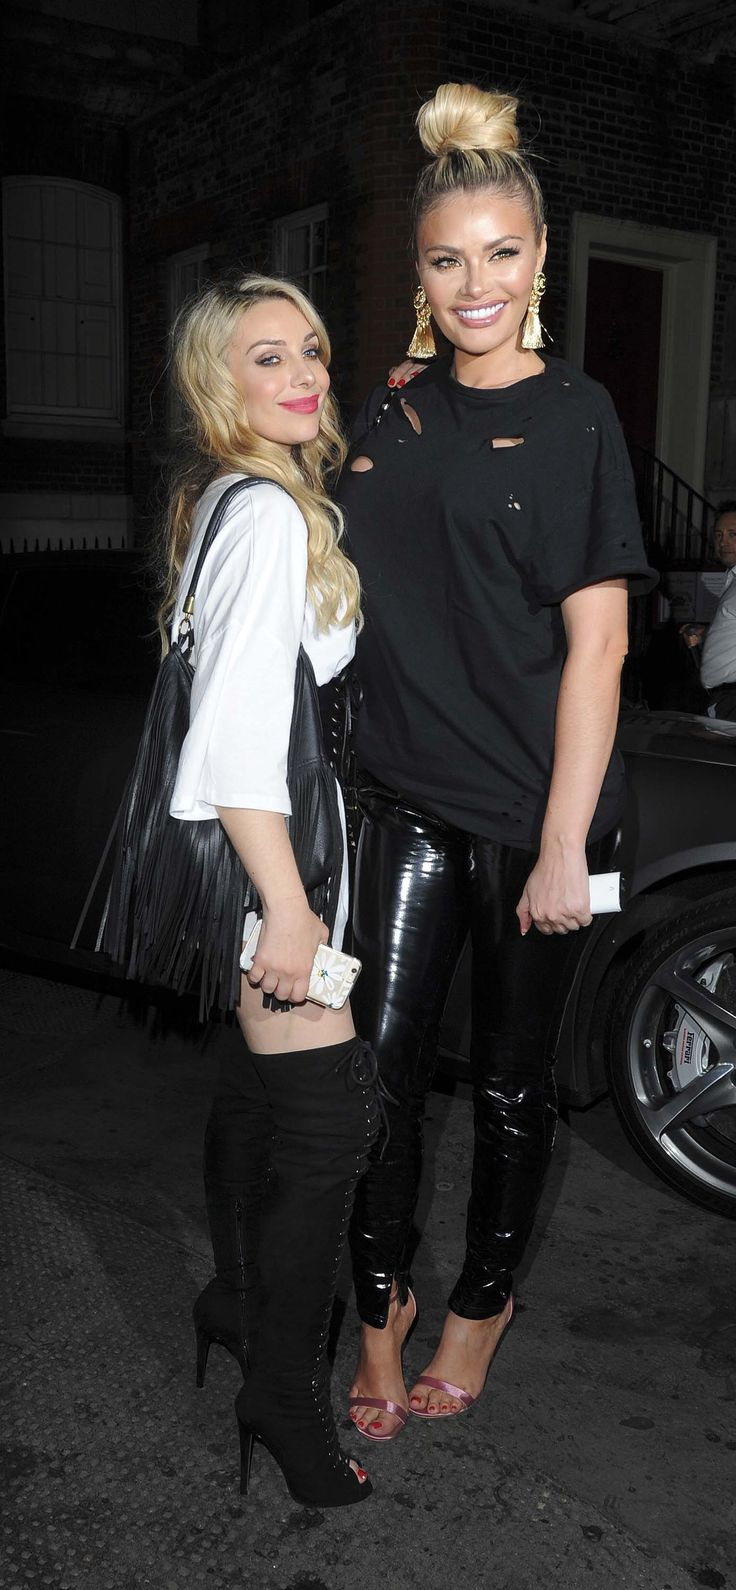 Chloe Sims arriving at the Chiltern Firehouse & Maddox Club